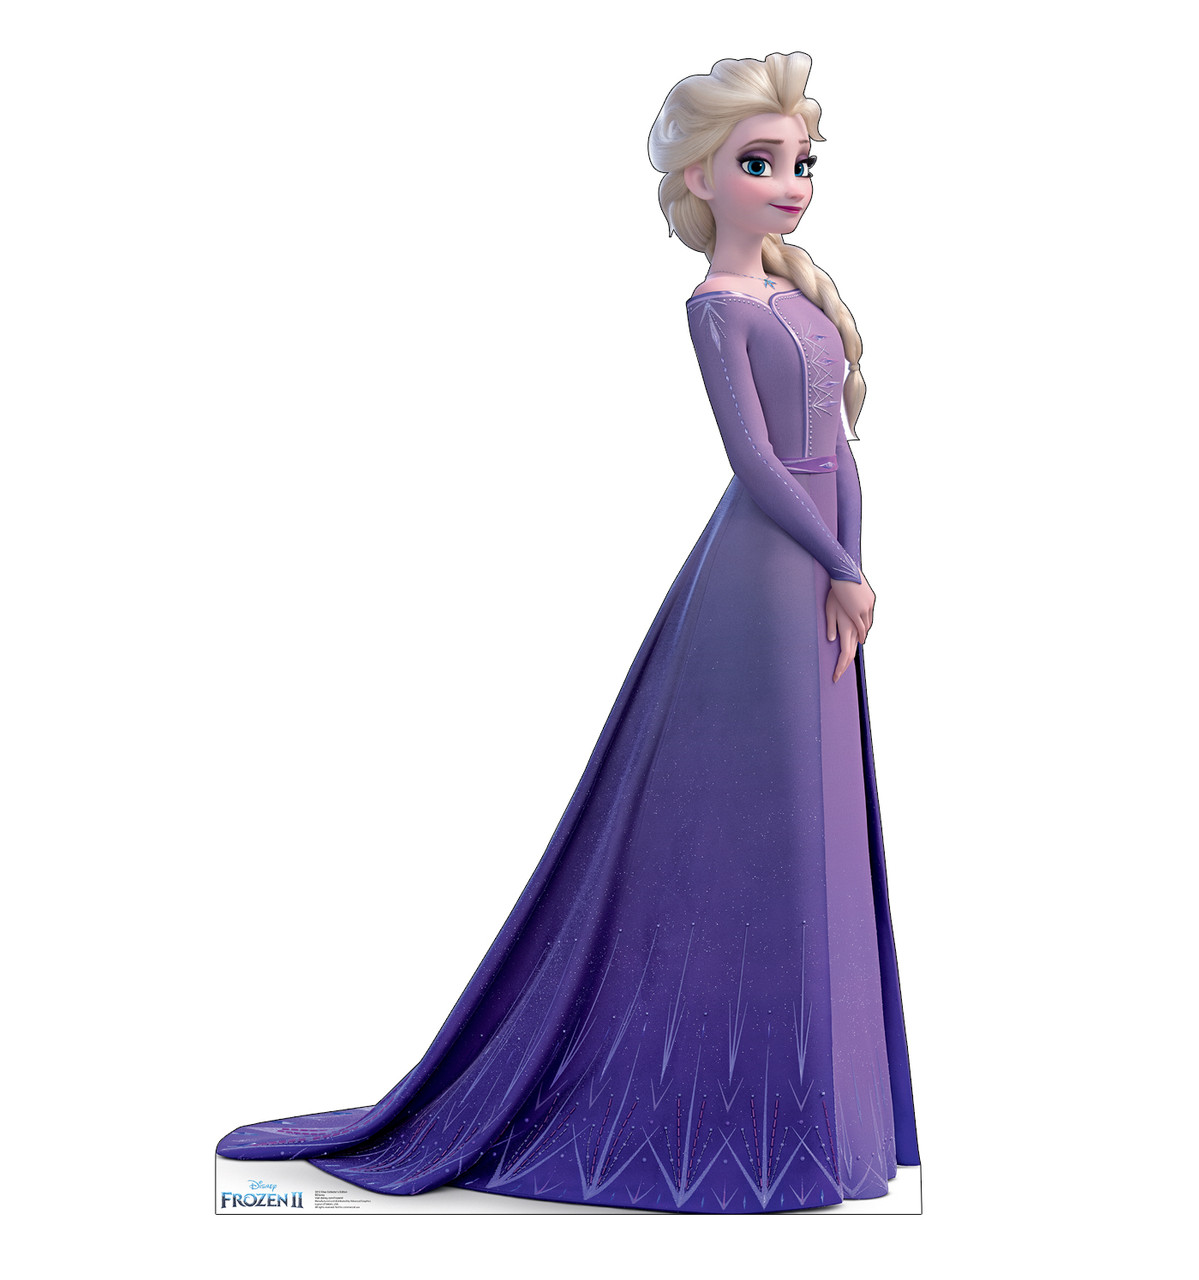 Life-size cardboard standee of Elsa (Collector's Edition) from Disney's Frozen 2.